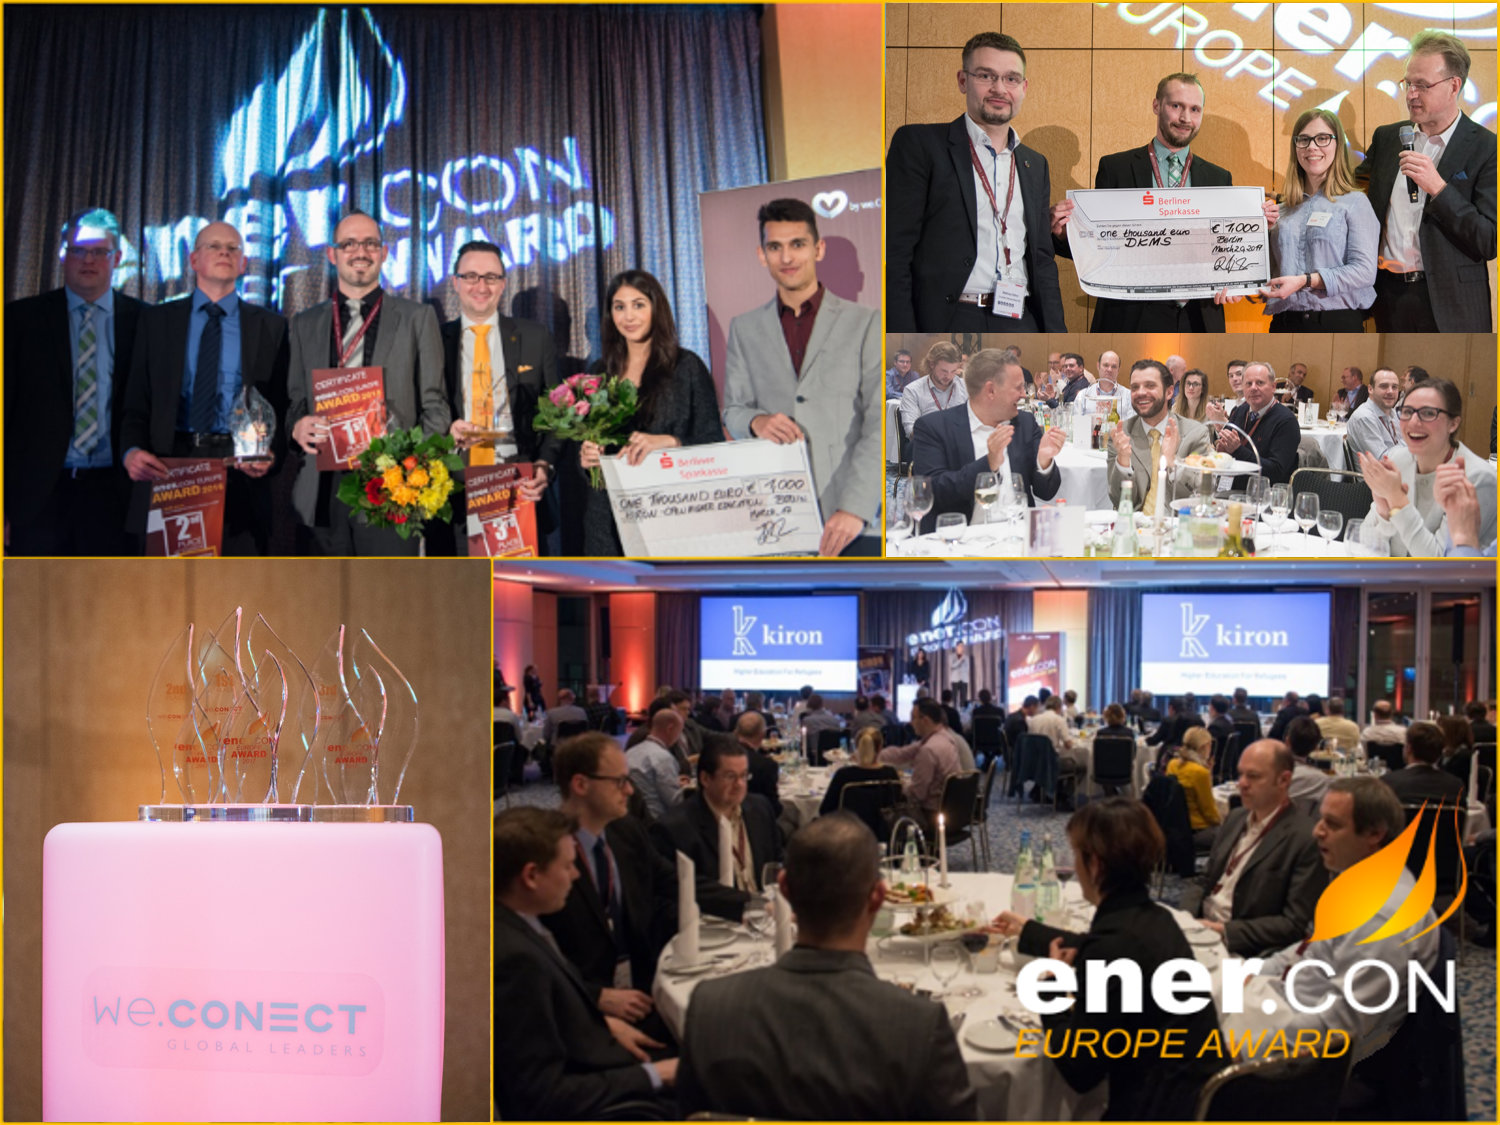 Presented by we.CONECT Global Leaders GmbH, the ener.CON award will exclusively recognize, celebrate and honor outstanding achievements and performances in energy and resource efficiency.<br><br>The deadline for submission is January 31, 2018.